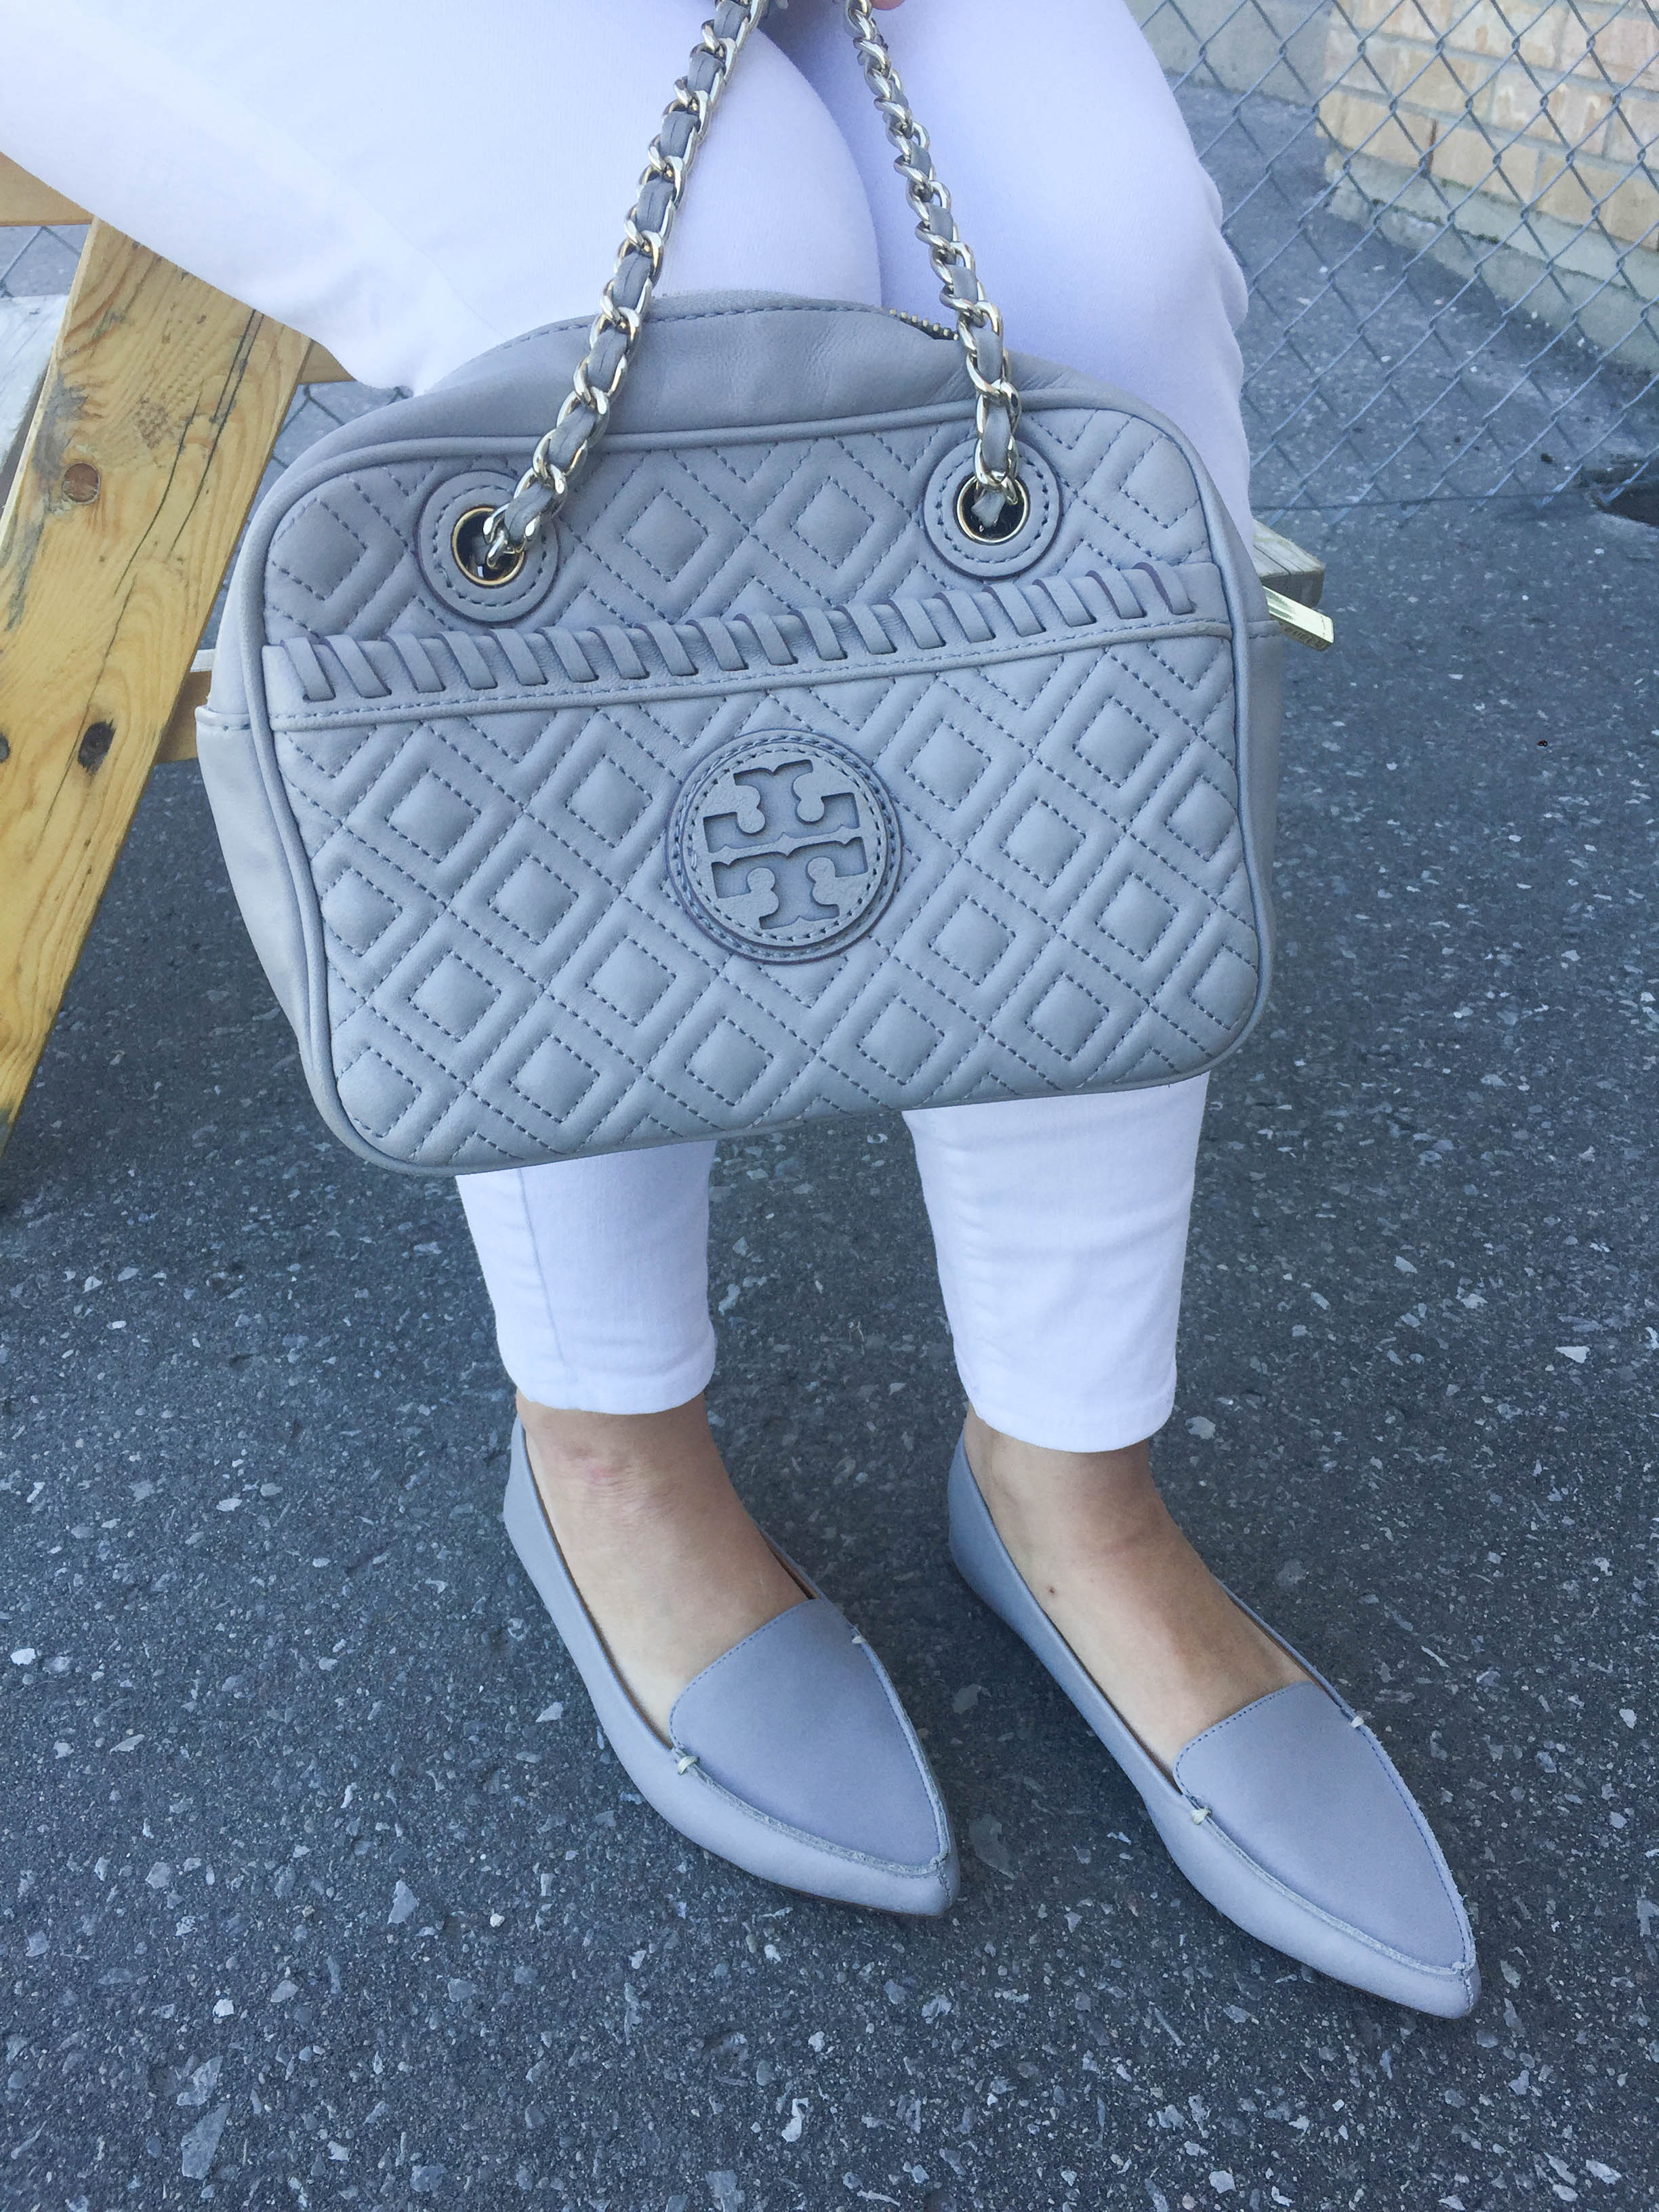 J Crew Flats & Tory Burch Bag